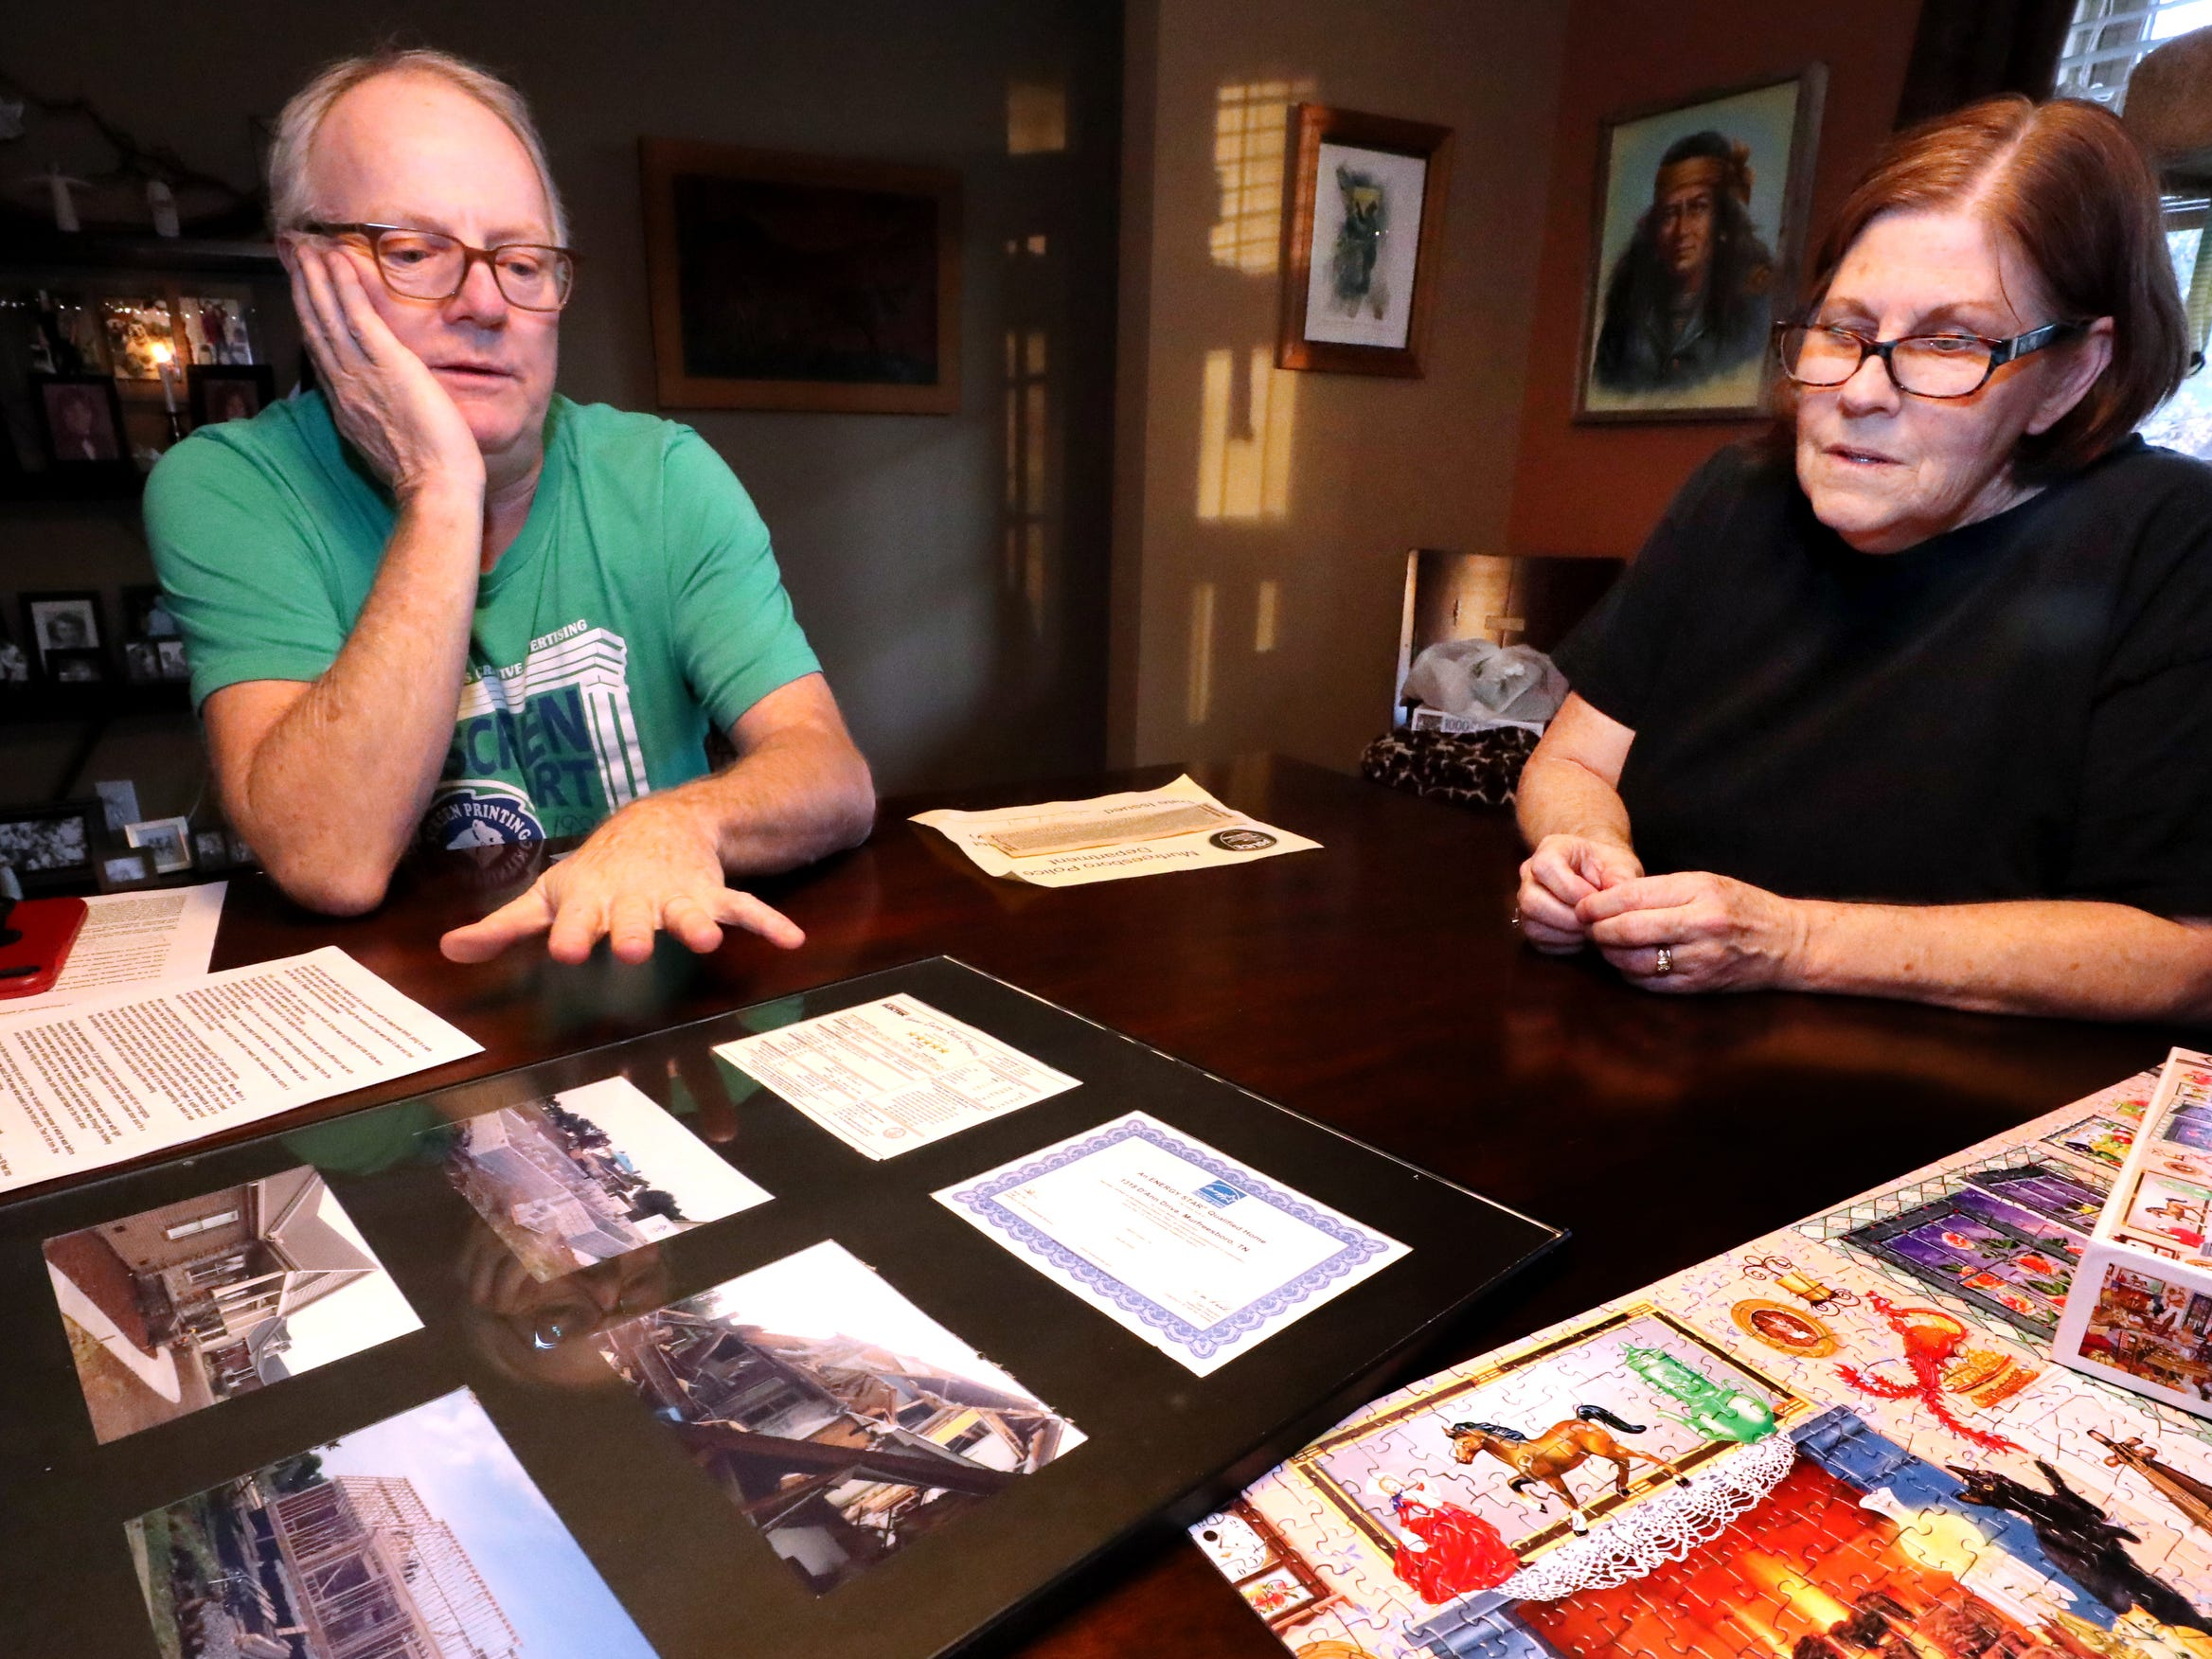 Mike and Teresa Bickford show off pictures and items that they acquired after the 2009 Good Friday tornado destroyed their home, during an interview in their new home, on Wednesday March 27, 2019.